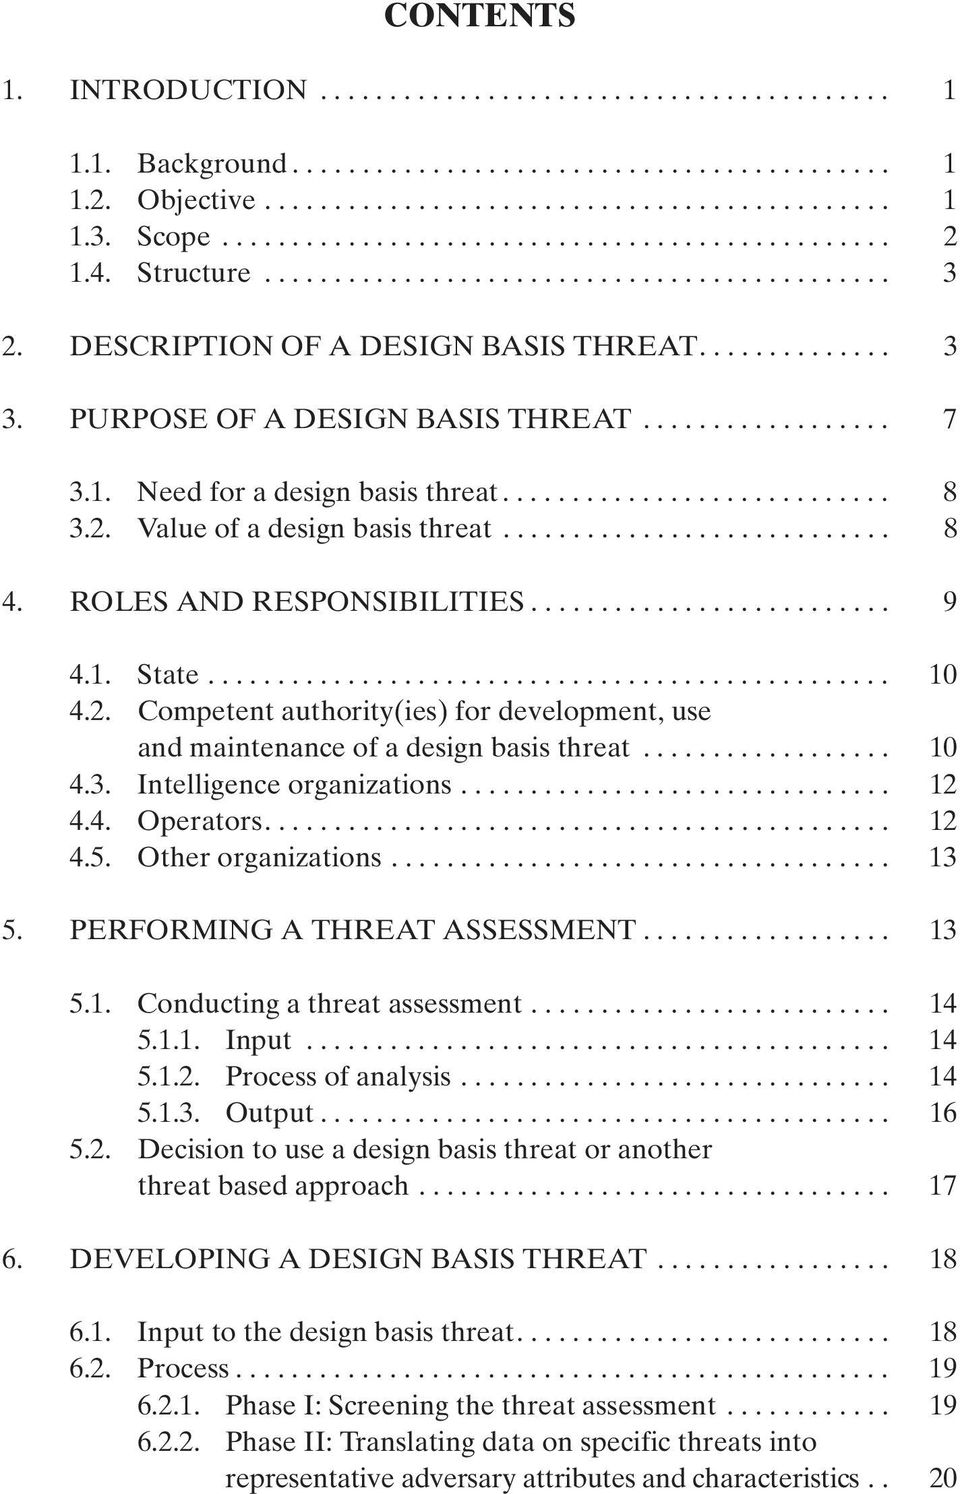 PURPOSE OF A DESIGN BASIS THREAT.................. 7 3.1. Need for a design basis threat............................ 8 3.2. Value of a design basis threat............................ 8 4.